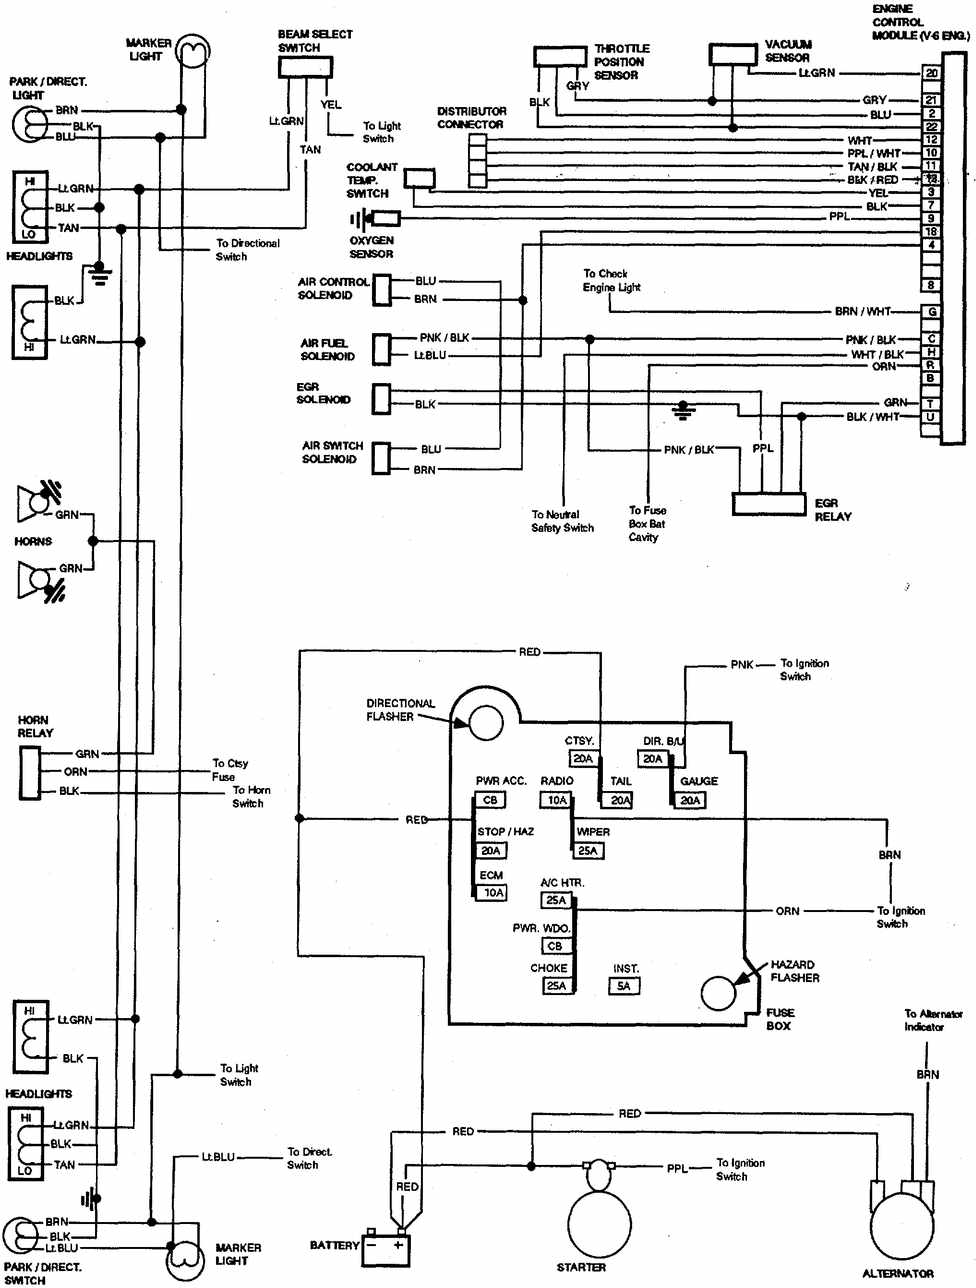 1987 ford alternator wiring diagram